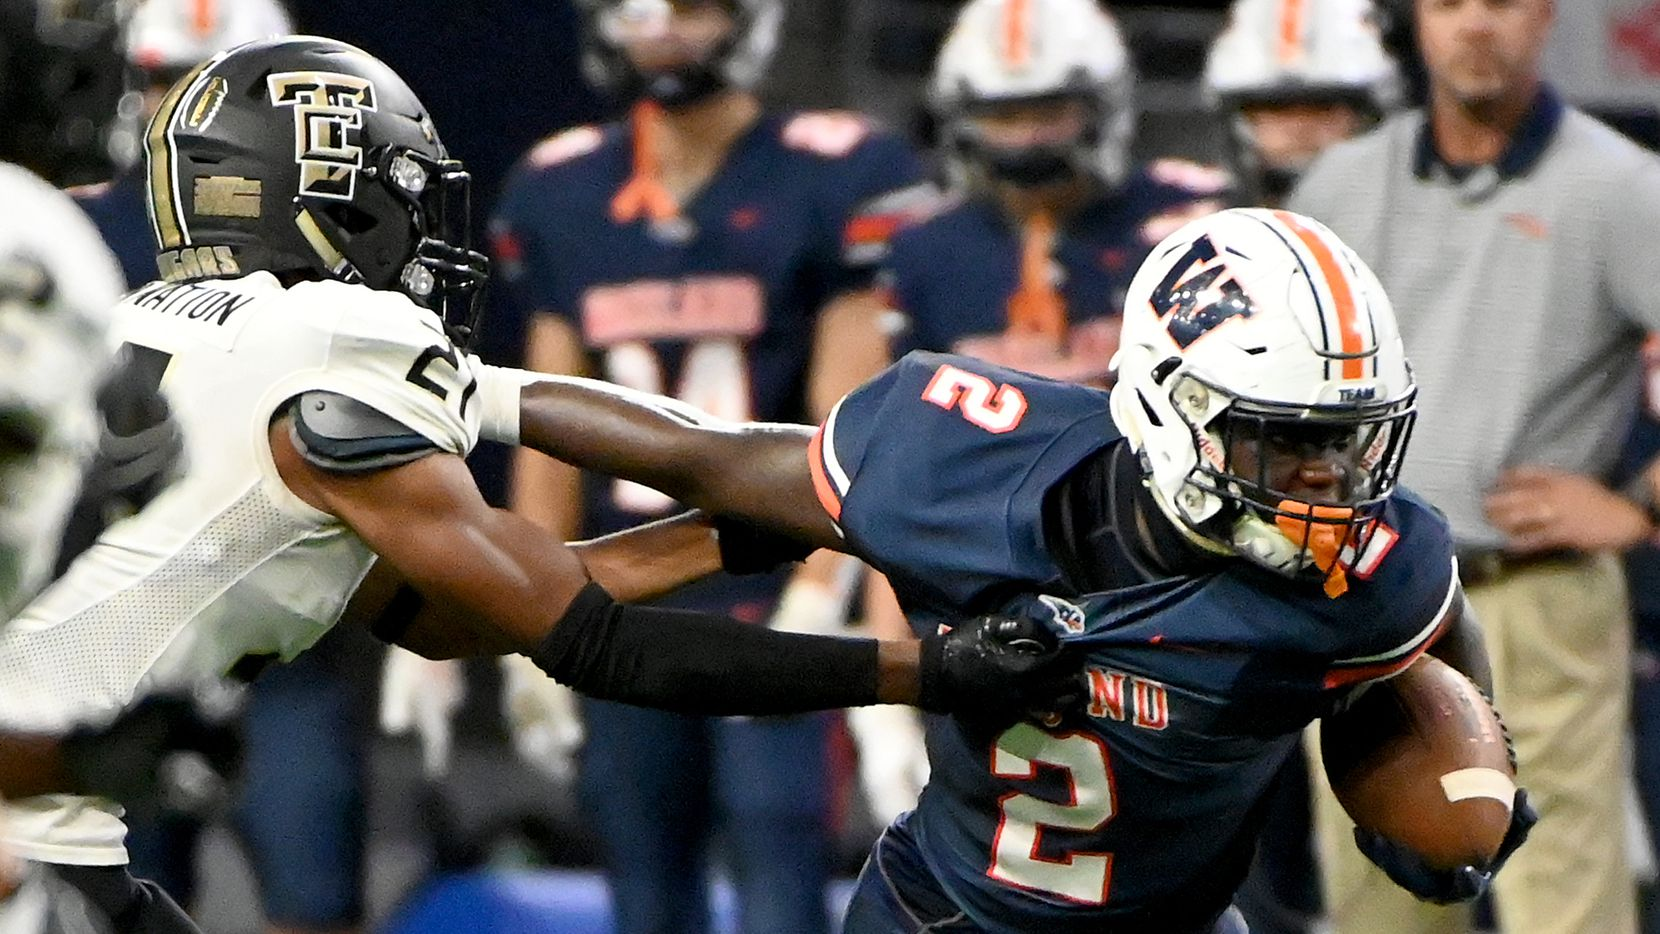 Frisco Wakeland's Jared White (2) runs through a tackle attempt by The Colony's Aaron Trotter (21) in the first half of a high school football game between The Colony and Frisco Wakeland, Friday, Sept. 17, 2021, in Frisco, Texas.